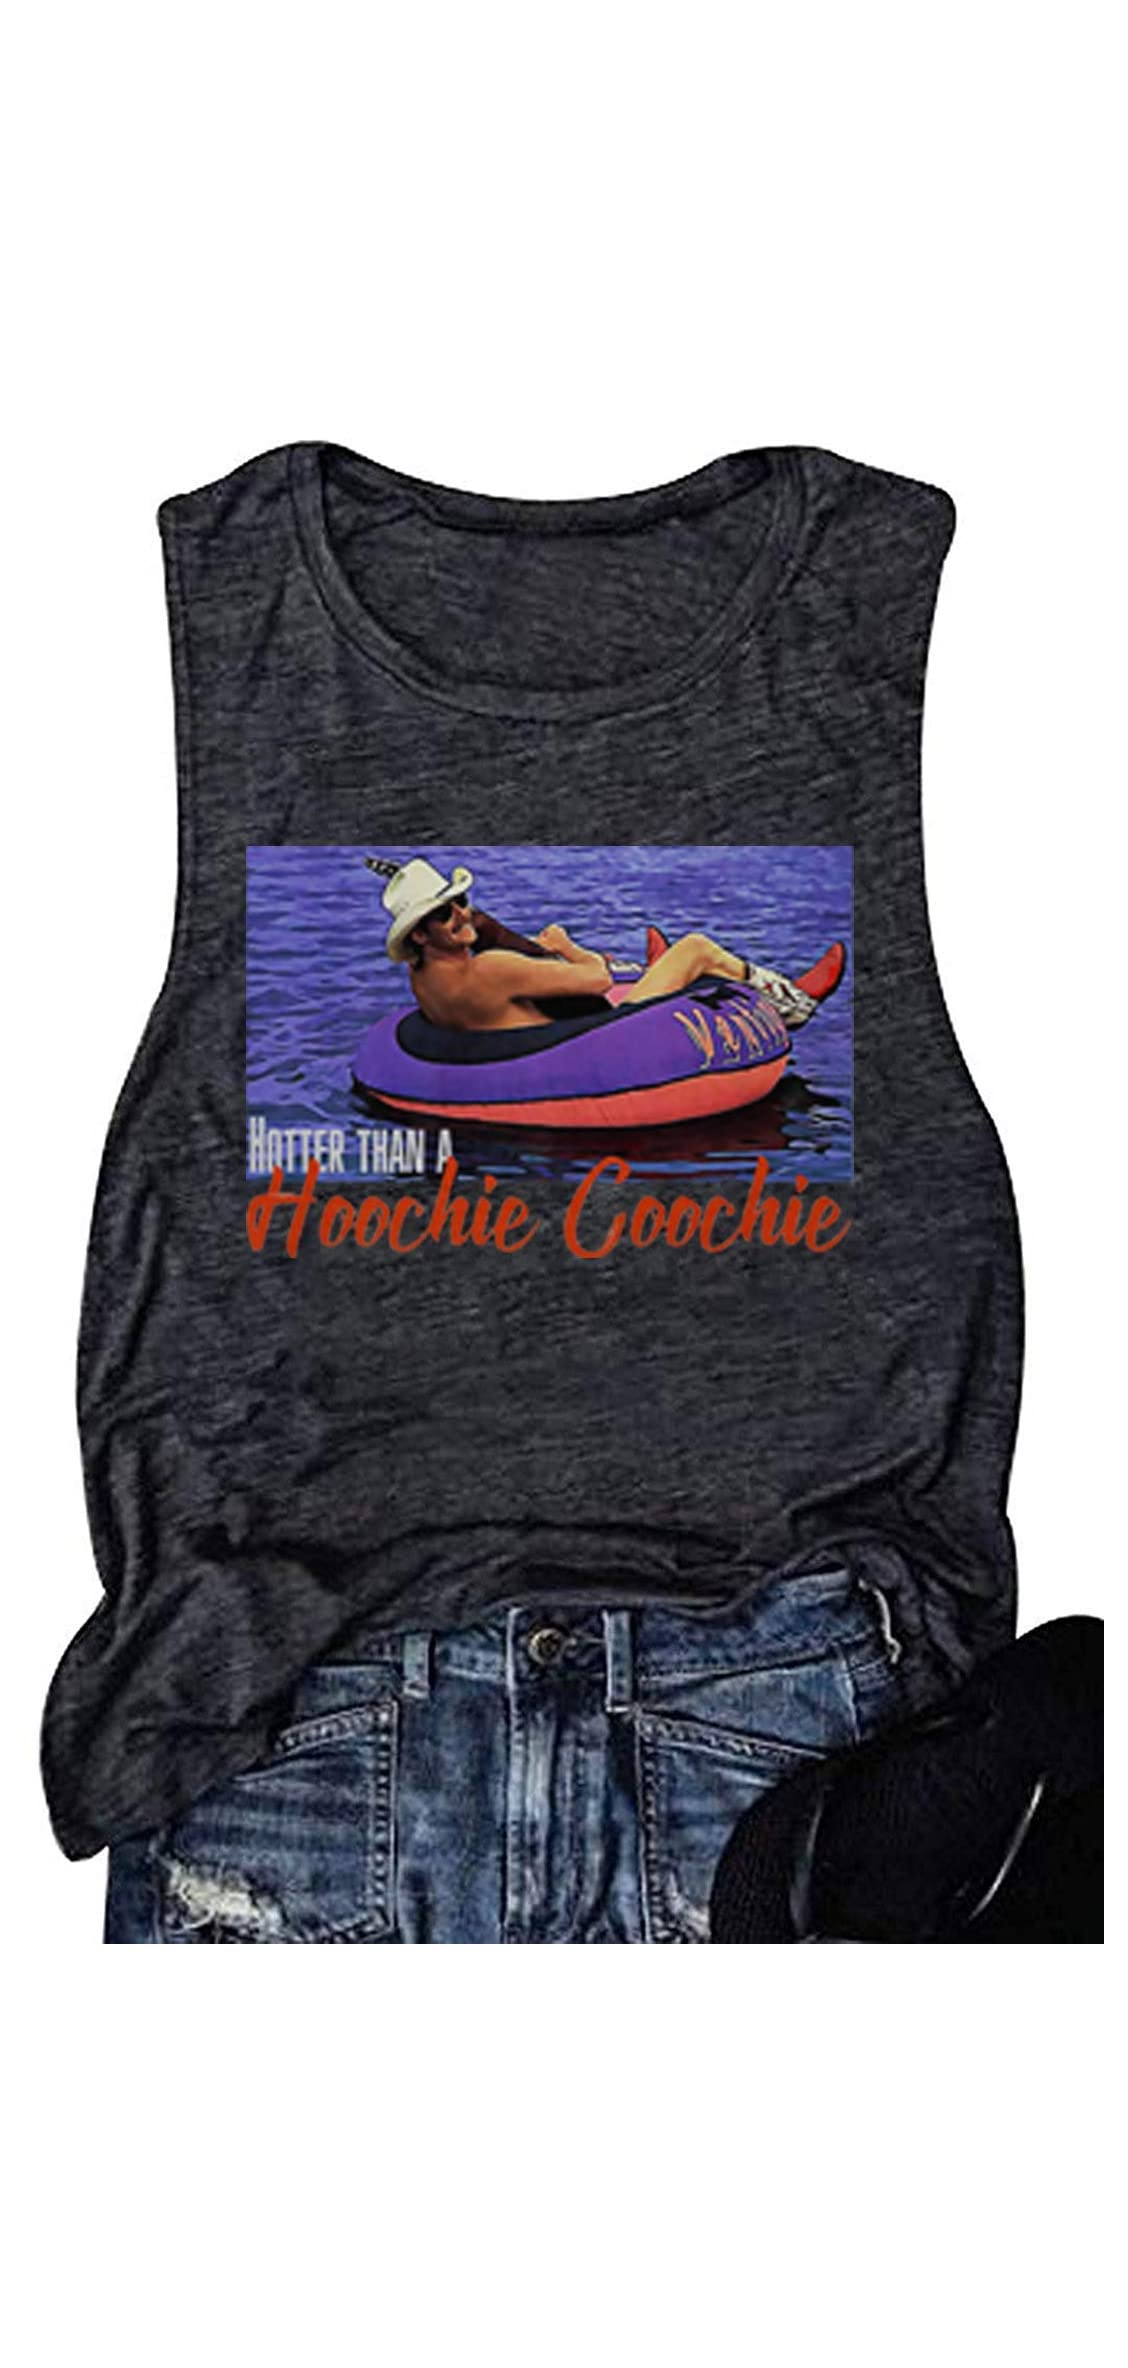 Hotter Than A Hoochie Coochie Country Music Tank Tops Vintage T